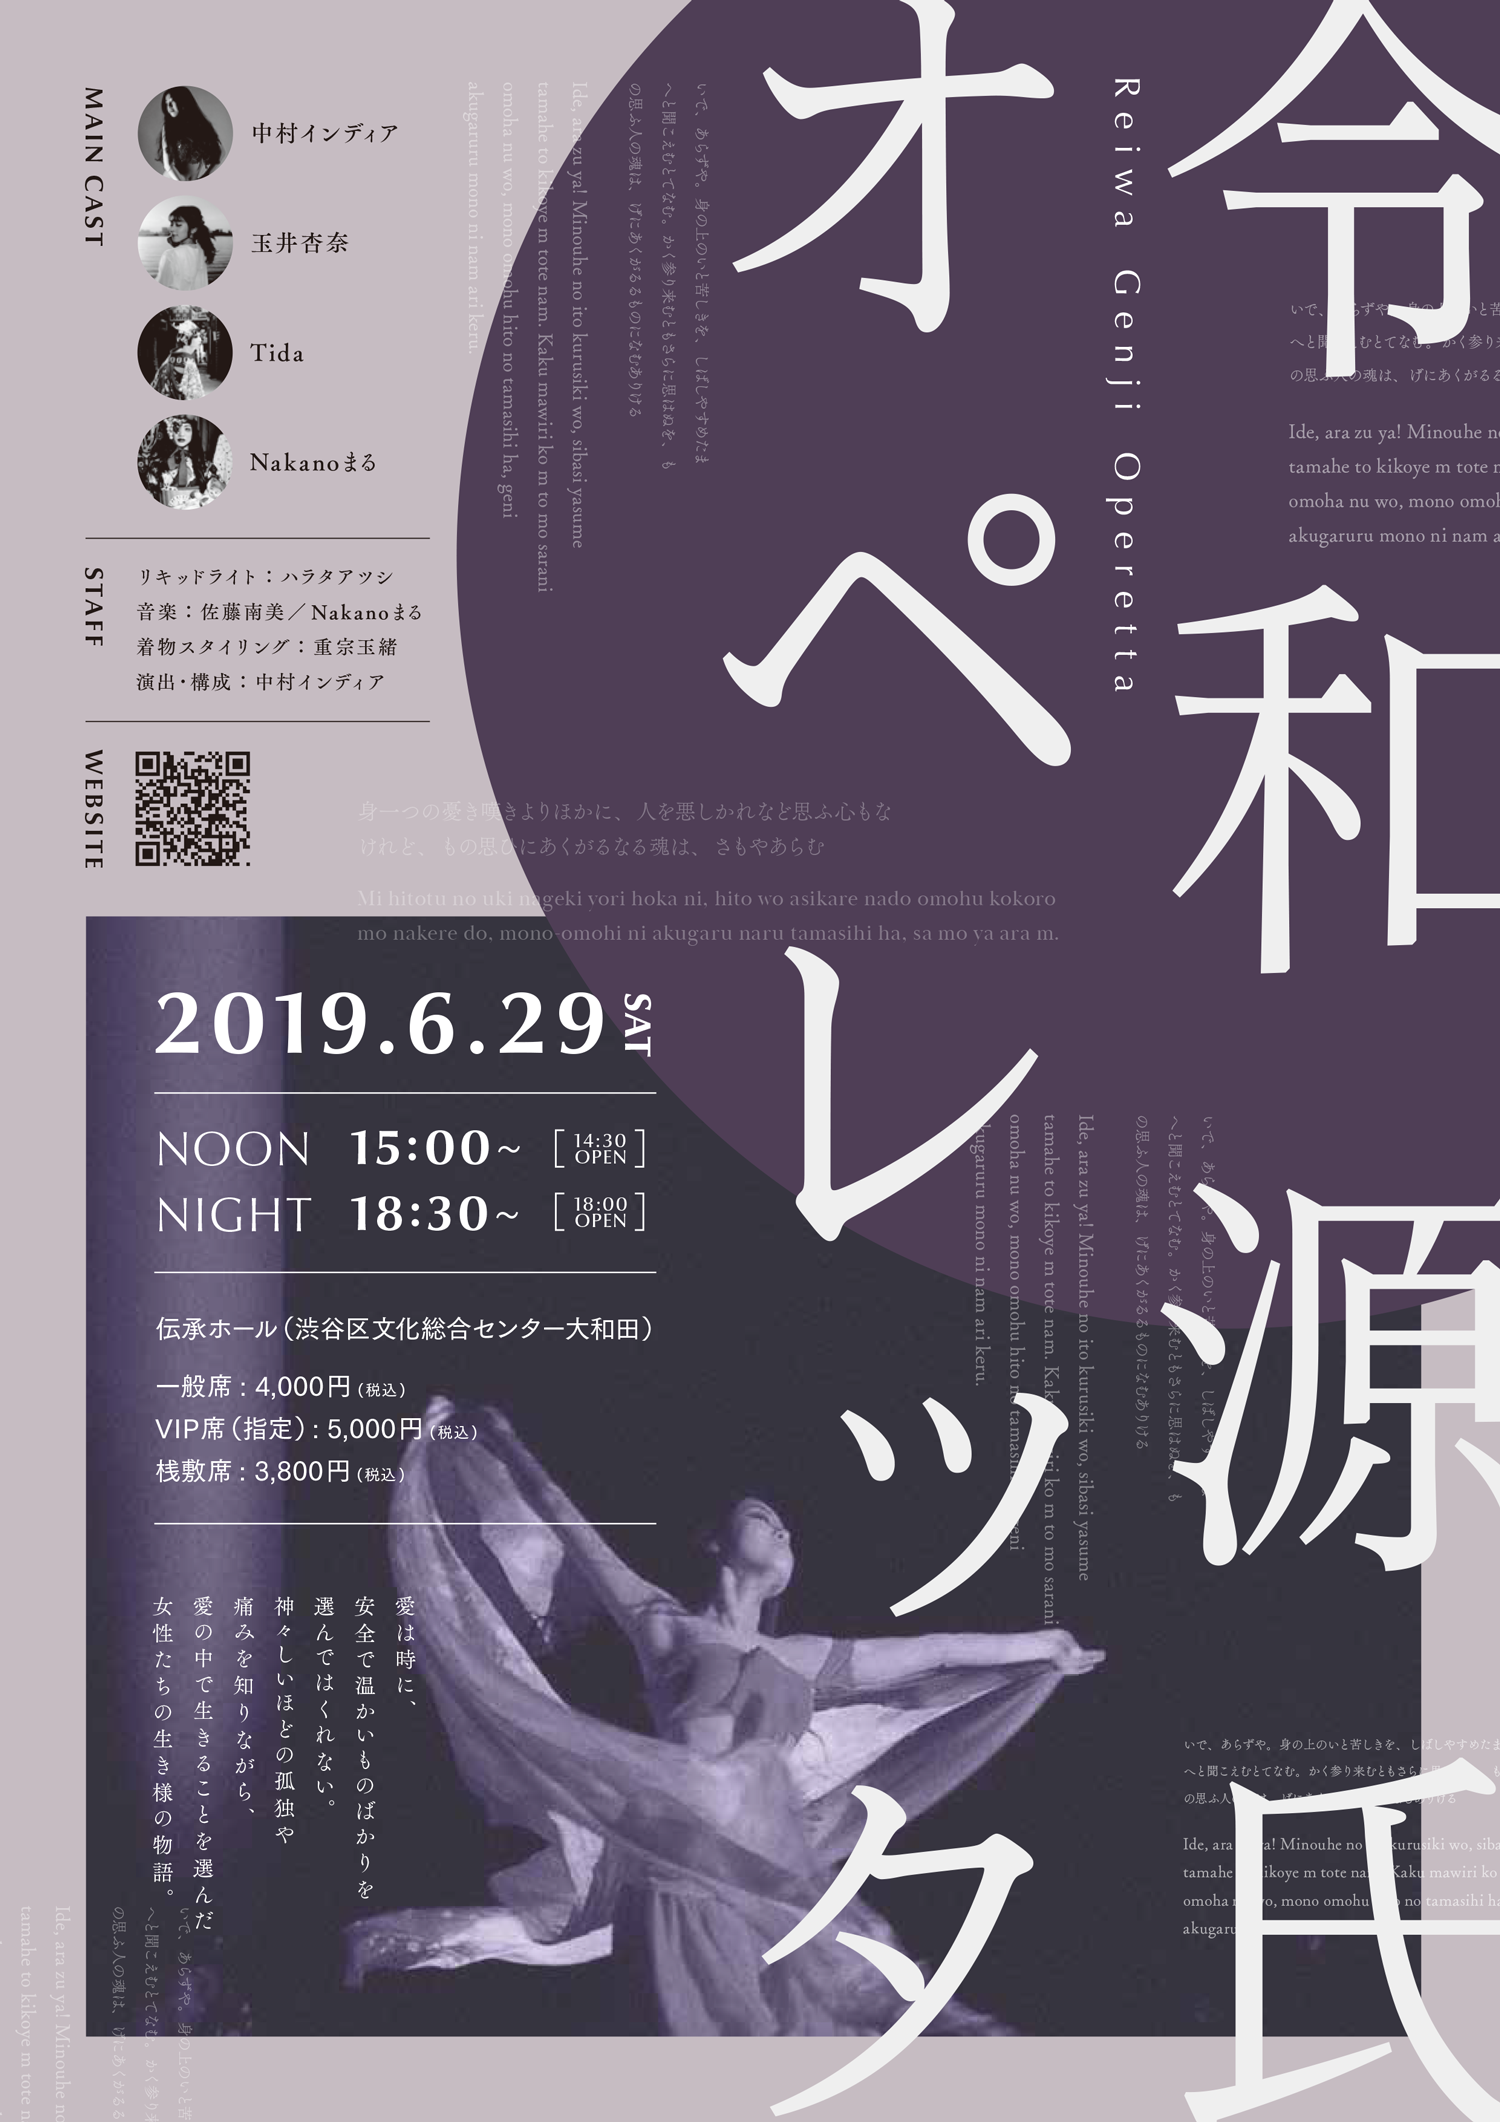 flyer_190414-3.png